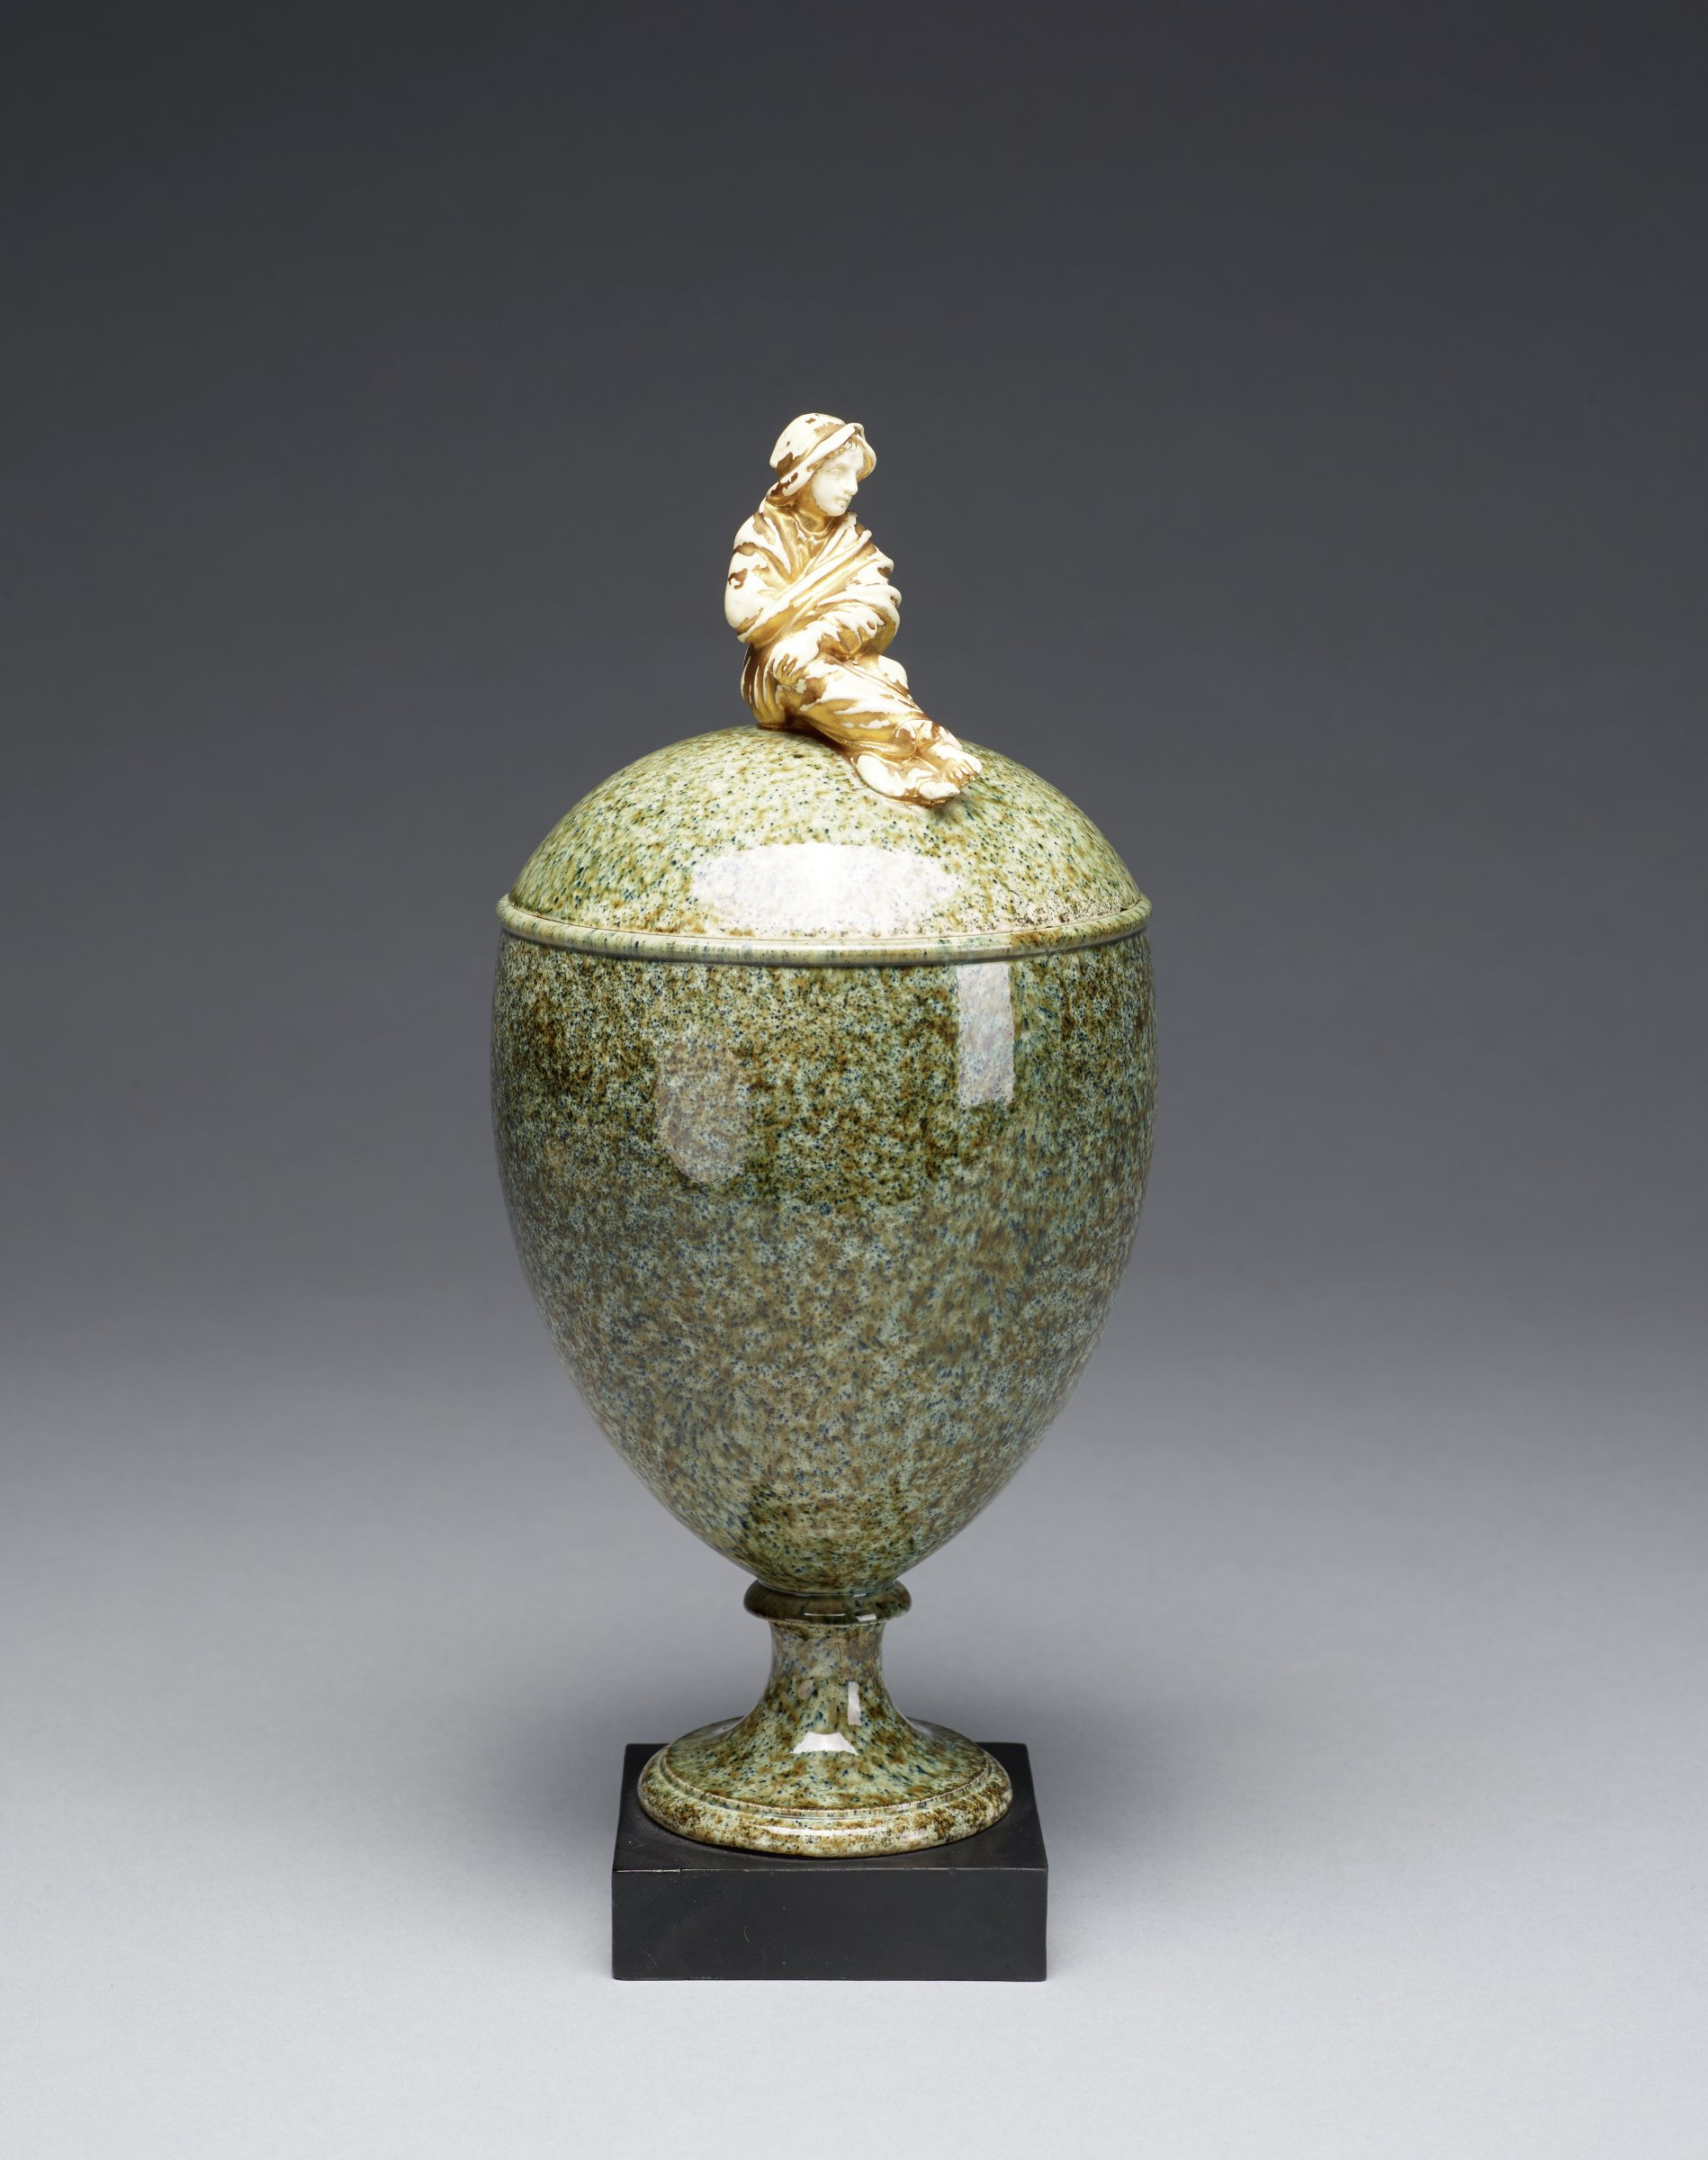 """Covered oviform footed vase of creamware covered with variegated green glaze in imitation of granite, with gilt """"Sibyl"""" finial in the form of a draped, seated female figure, with right leg crossed over left and left hand resting on right knee, the vase mounted on small, square basalt base"""